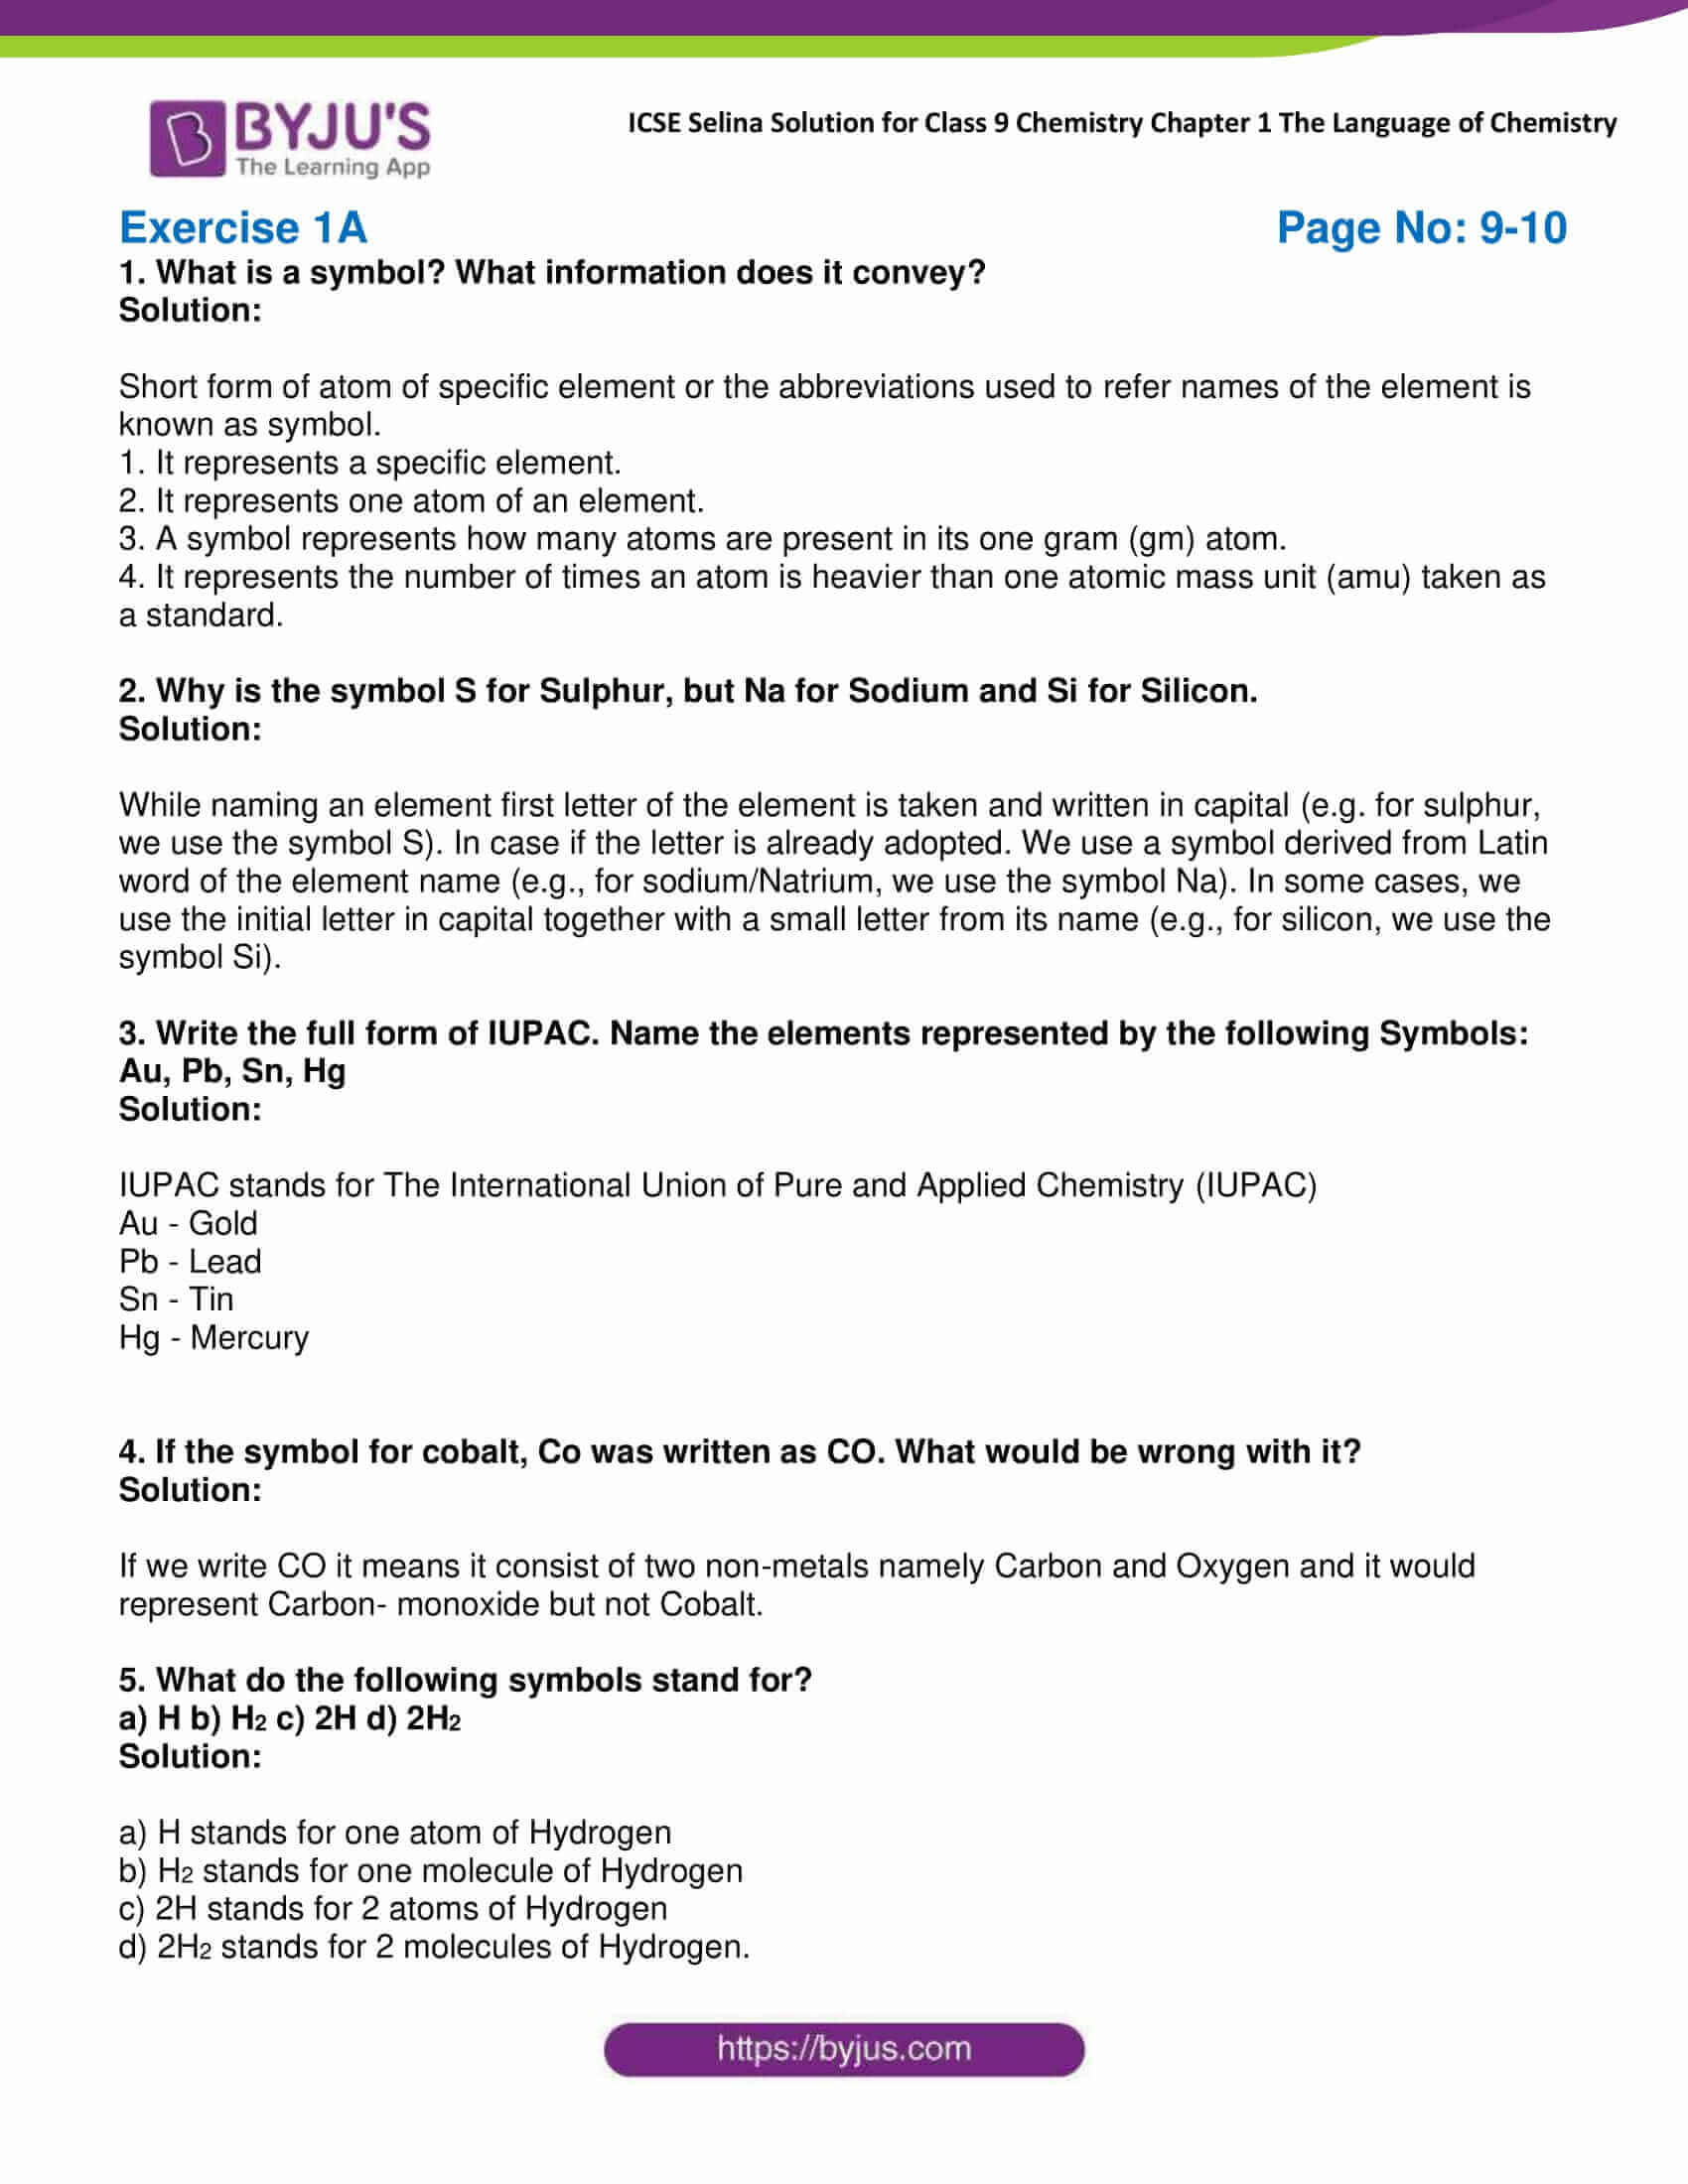 icse class 9 chemistry jul22 selina solutions chapter 1 the language of chemistry 01